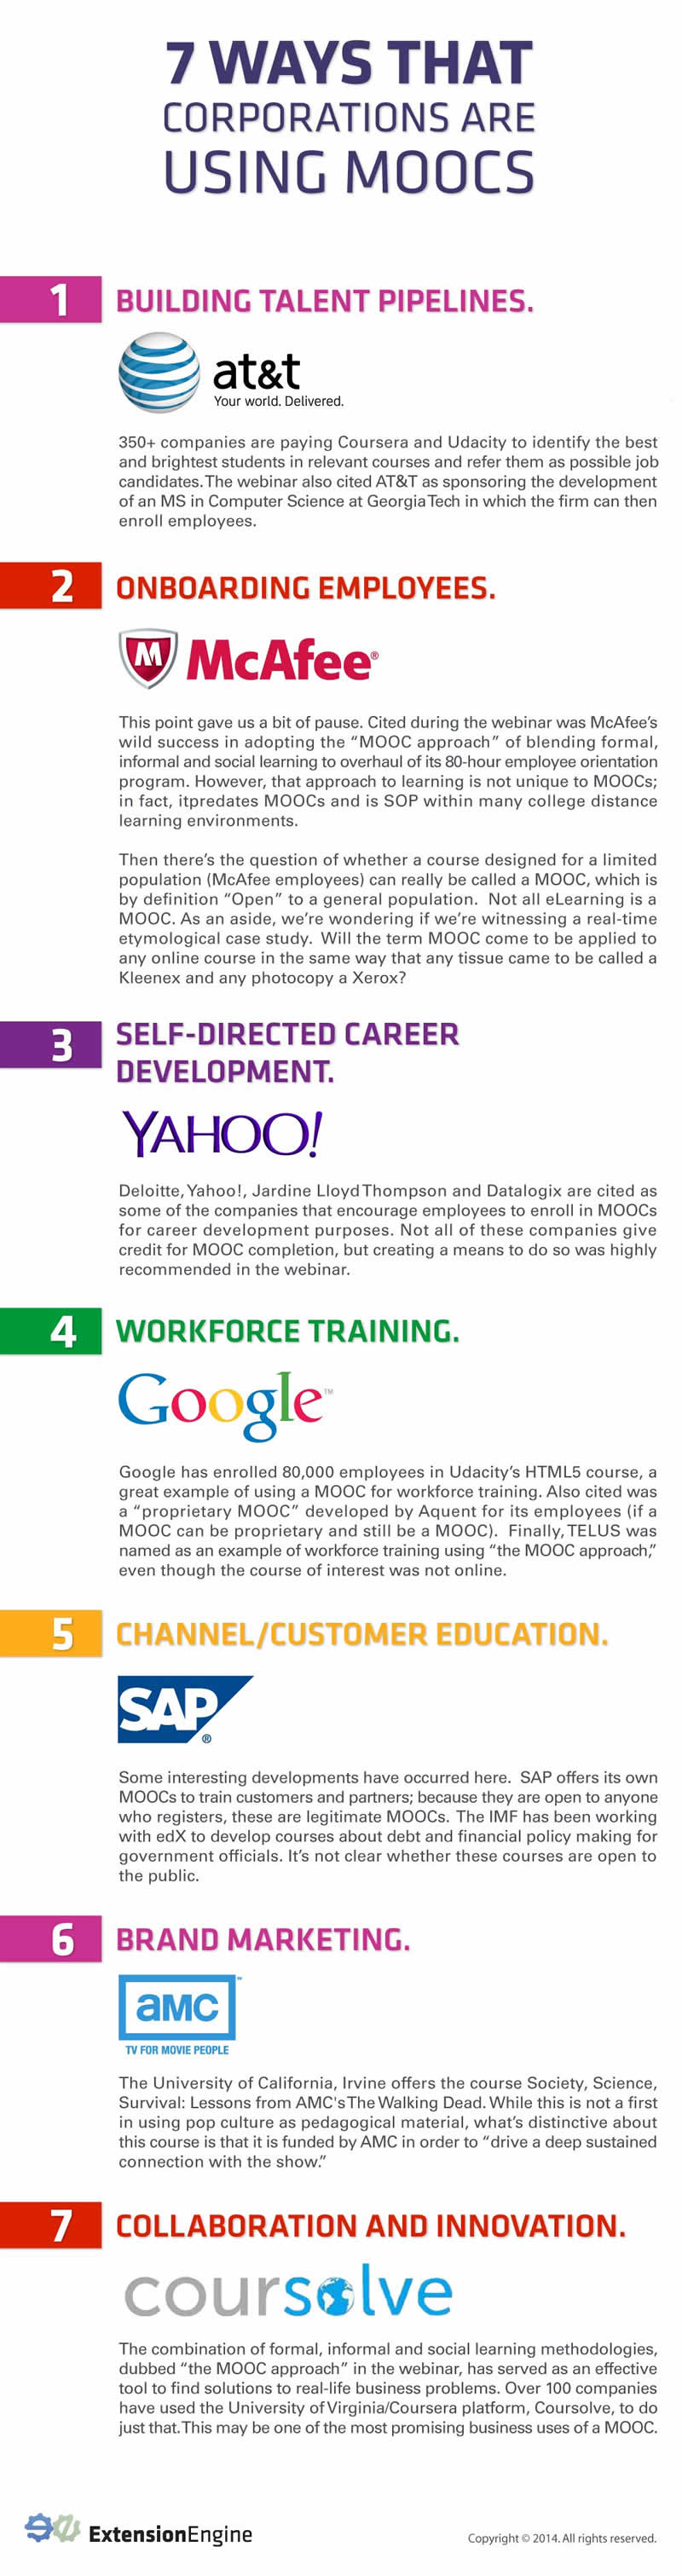 How-Corporations-Are-Using-MOOCs-Infographic.jpg